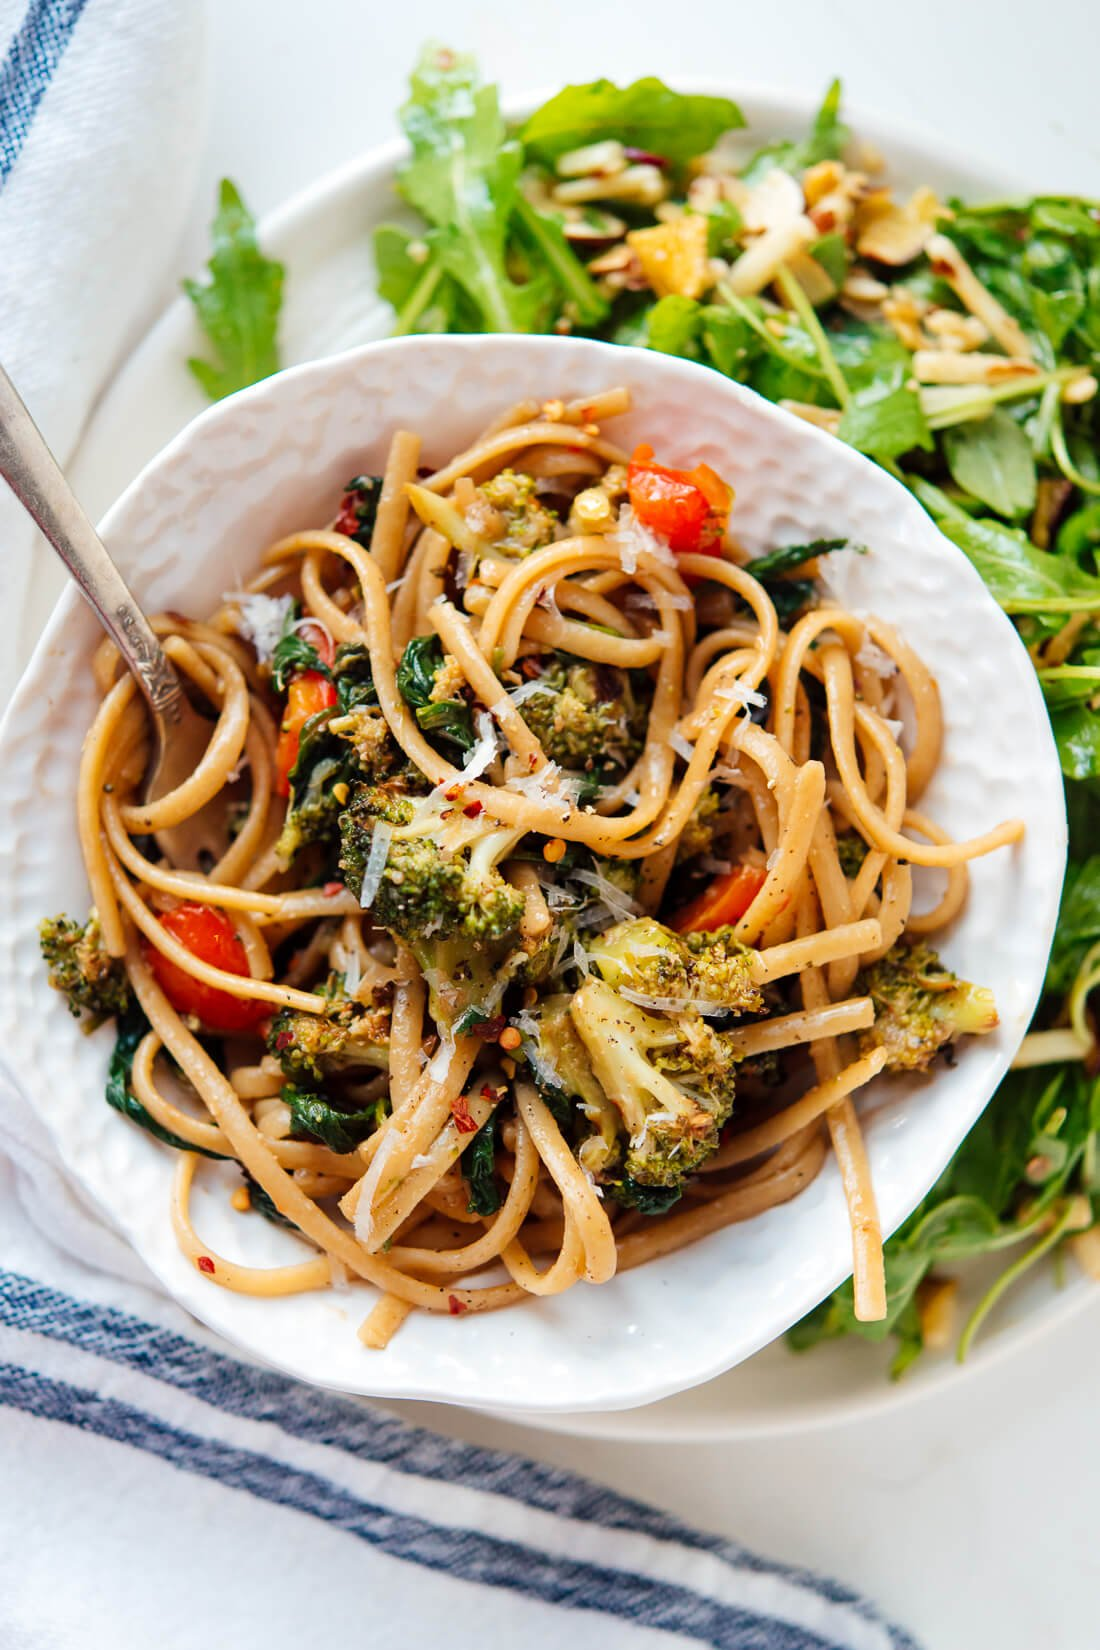 Spinach Pasta With Roasted Vegetables